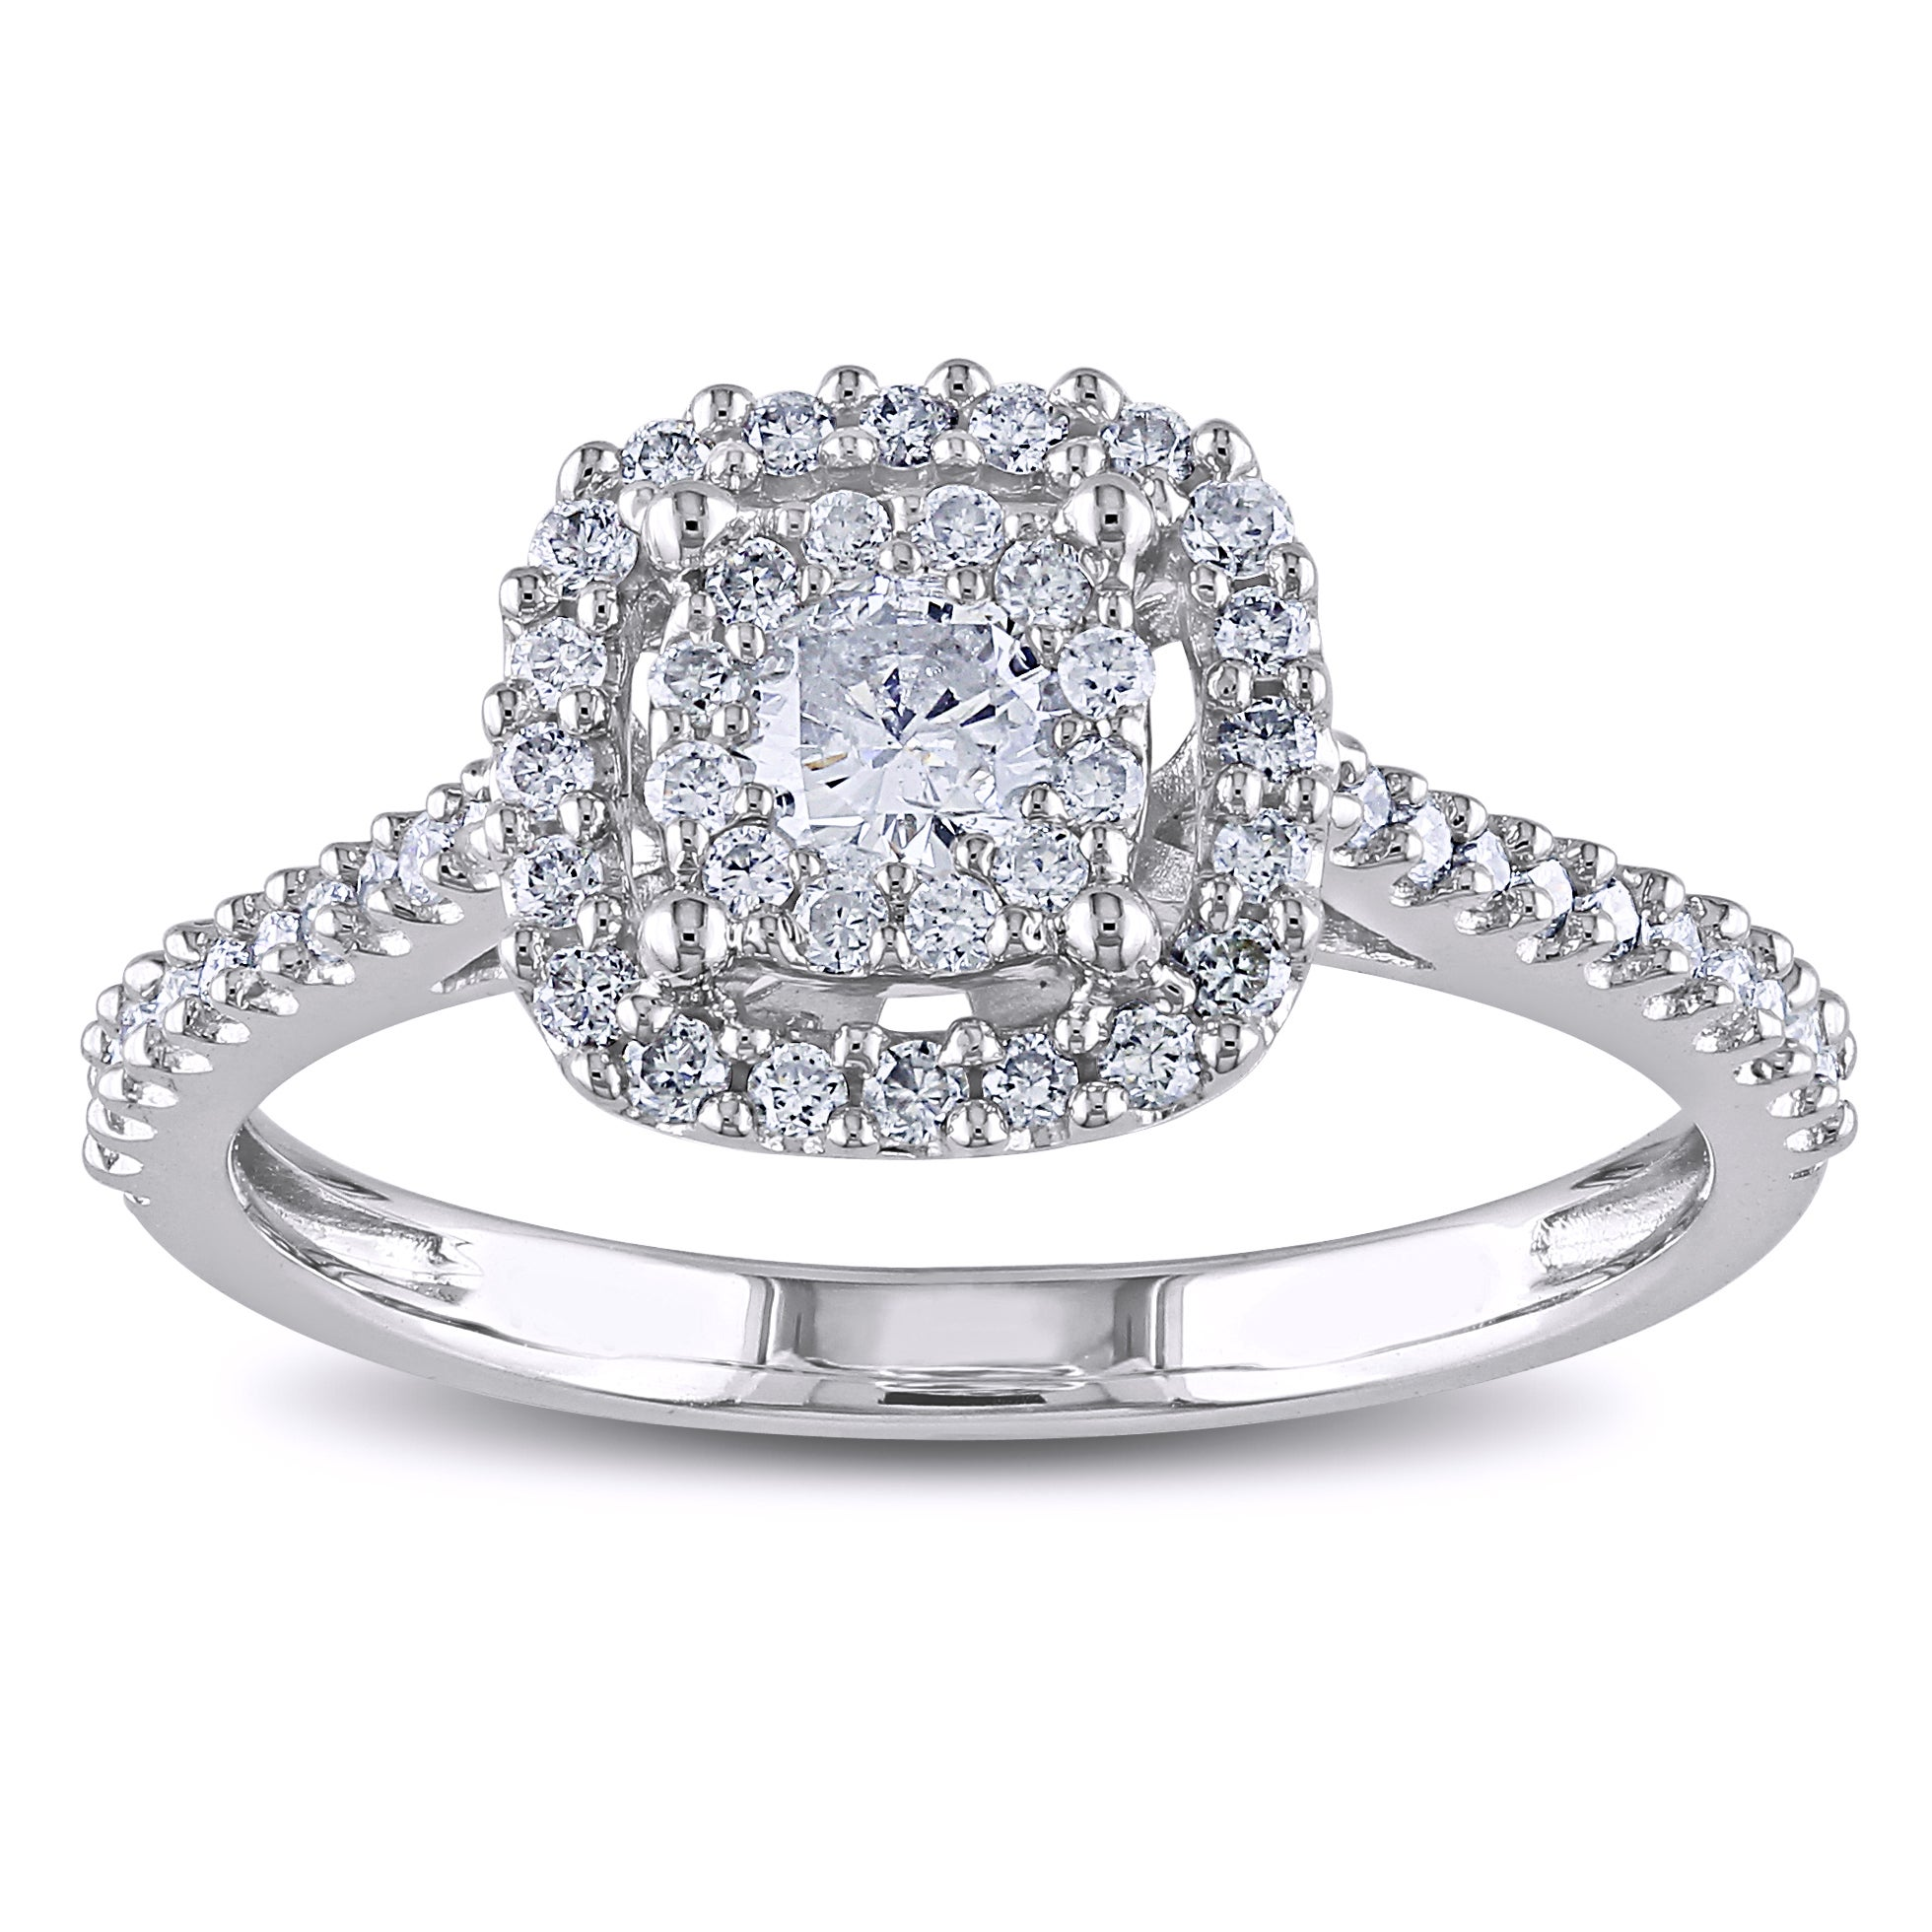 Miadora 10k White Gold 1/2ct TDW Round Cut Multi Stone